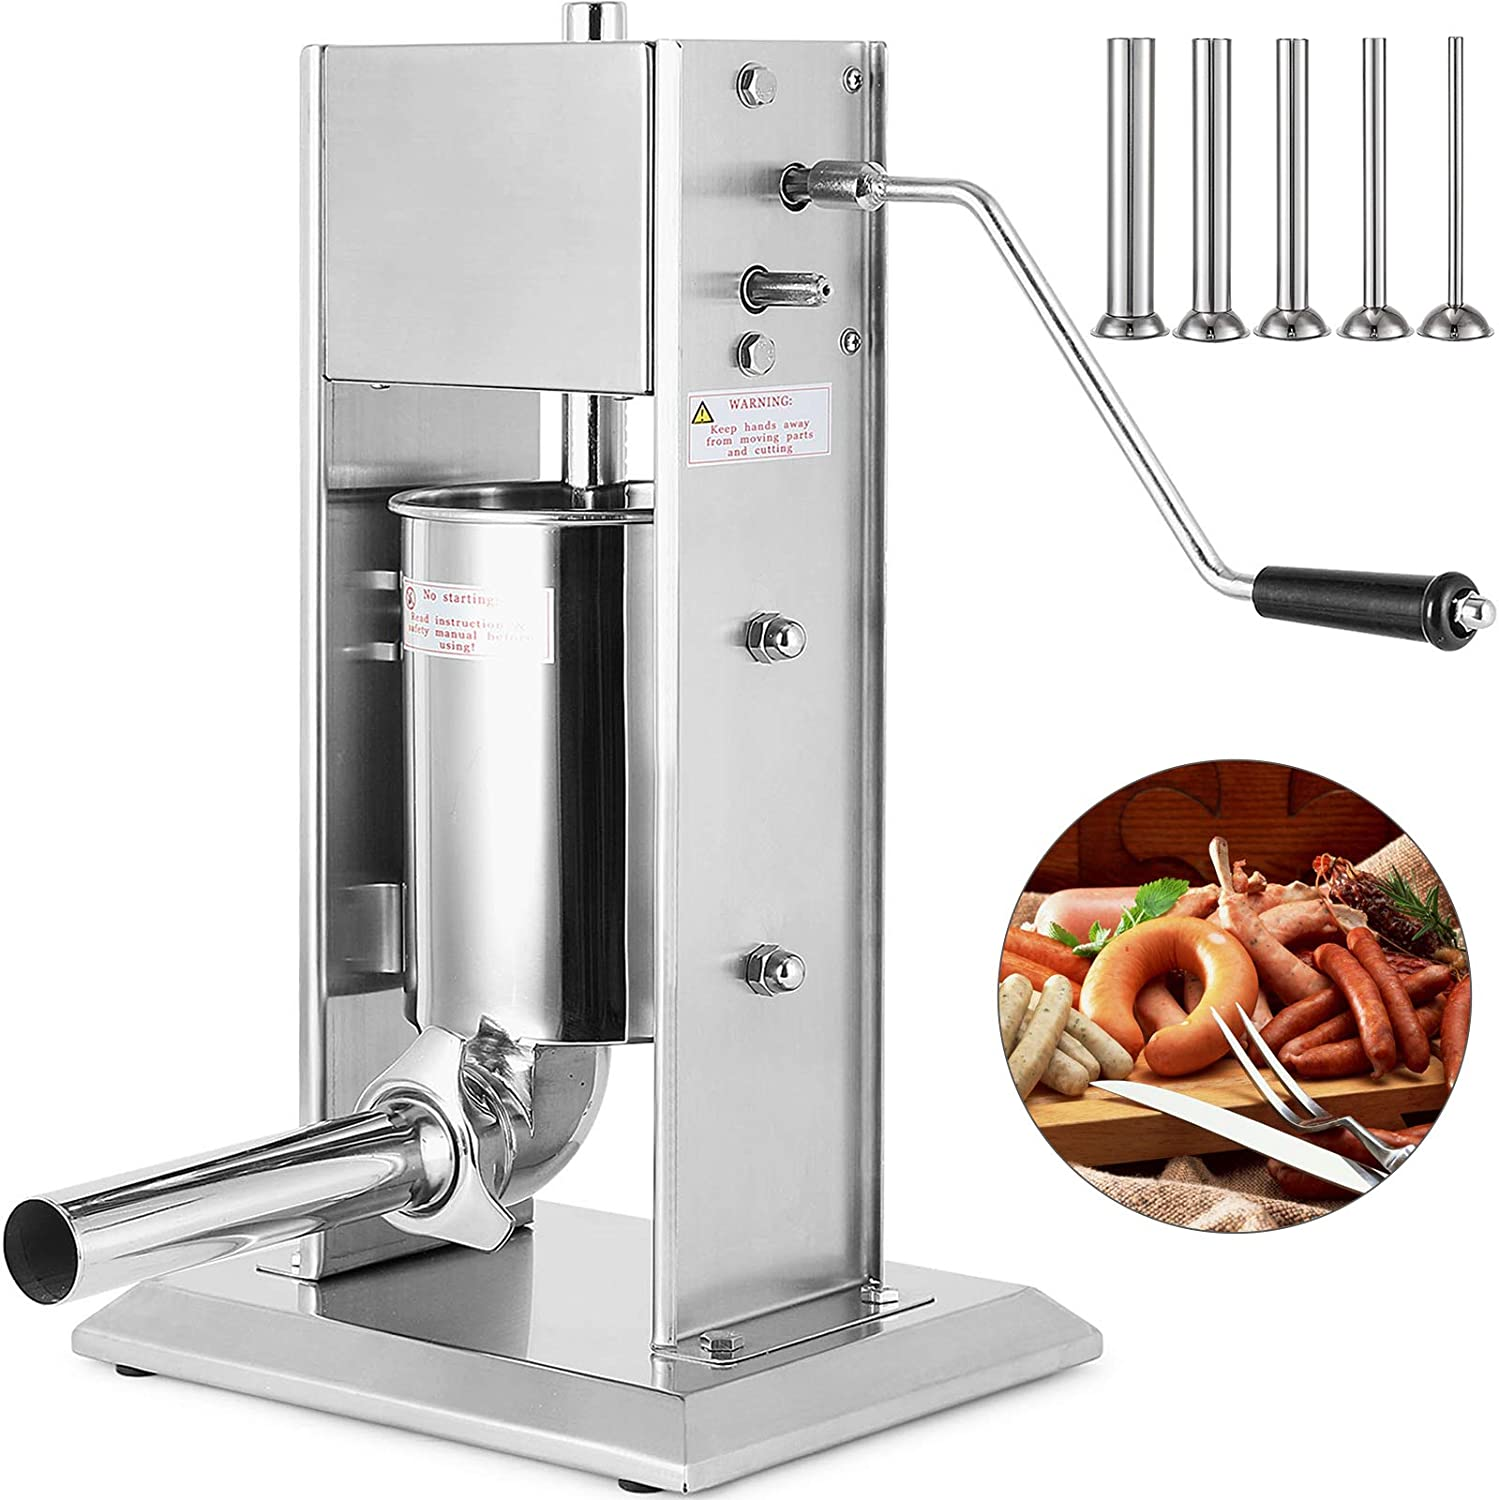 Happybuy Sausage Filler 5L 11LB Vertical Meat Stuffer Commercial Stainless Steel with 4 Filling Funnels, Manual, Silver